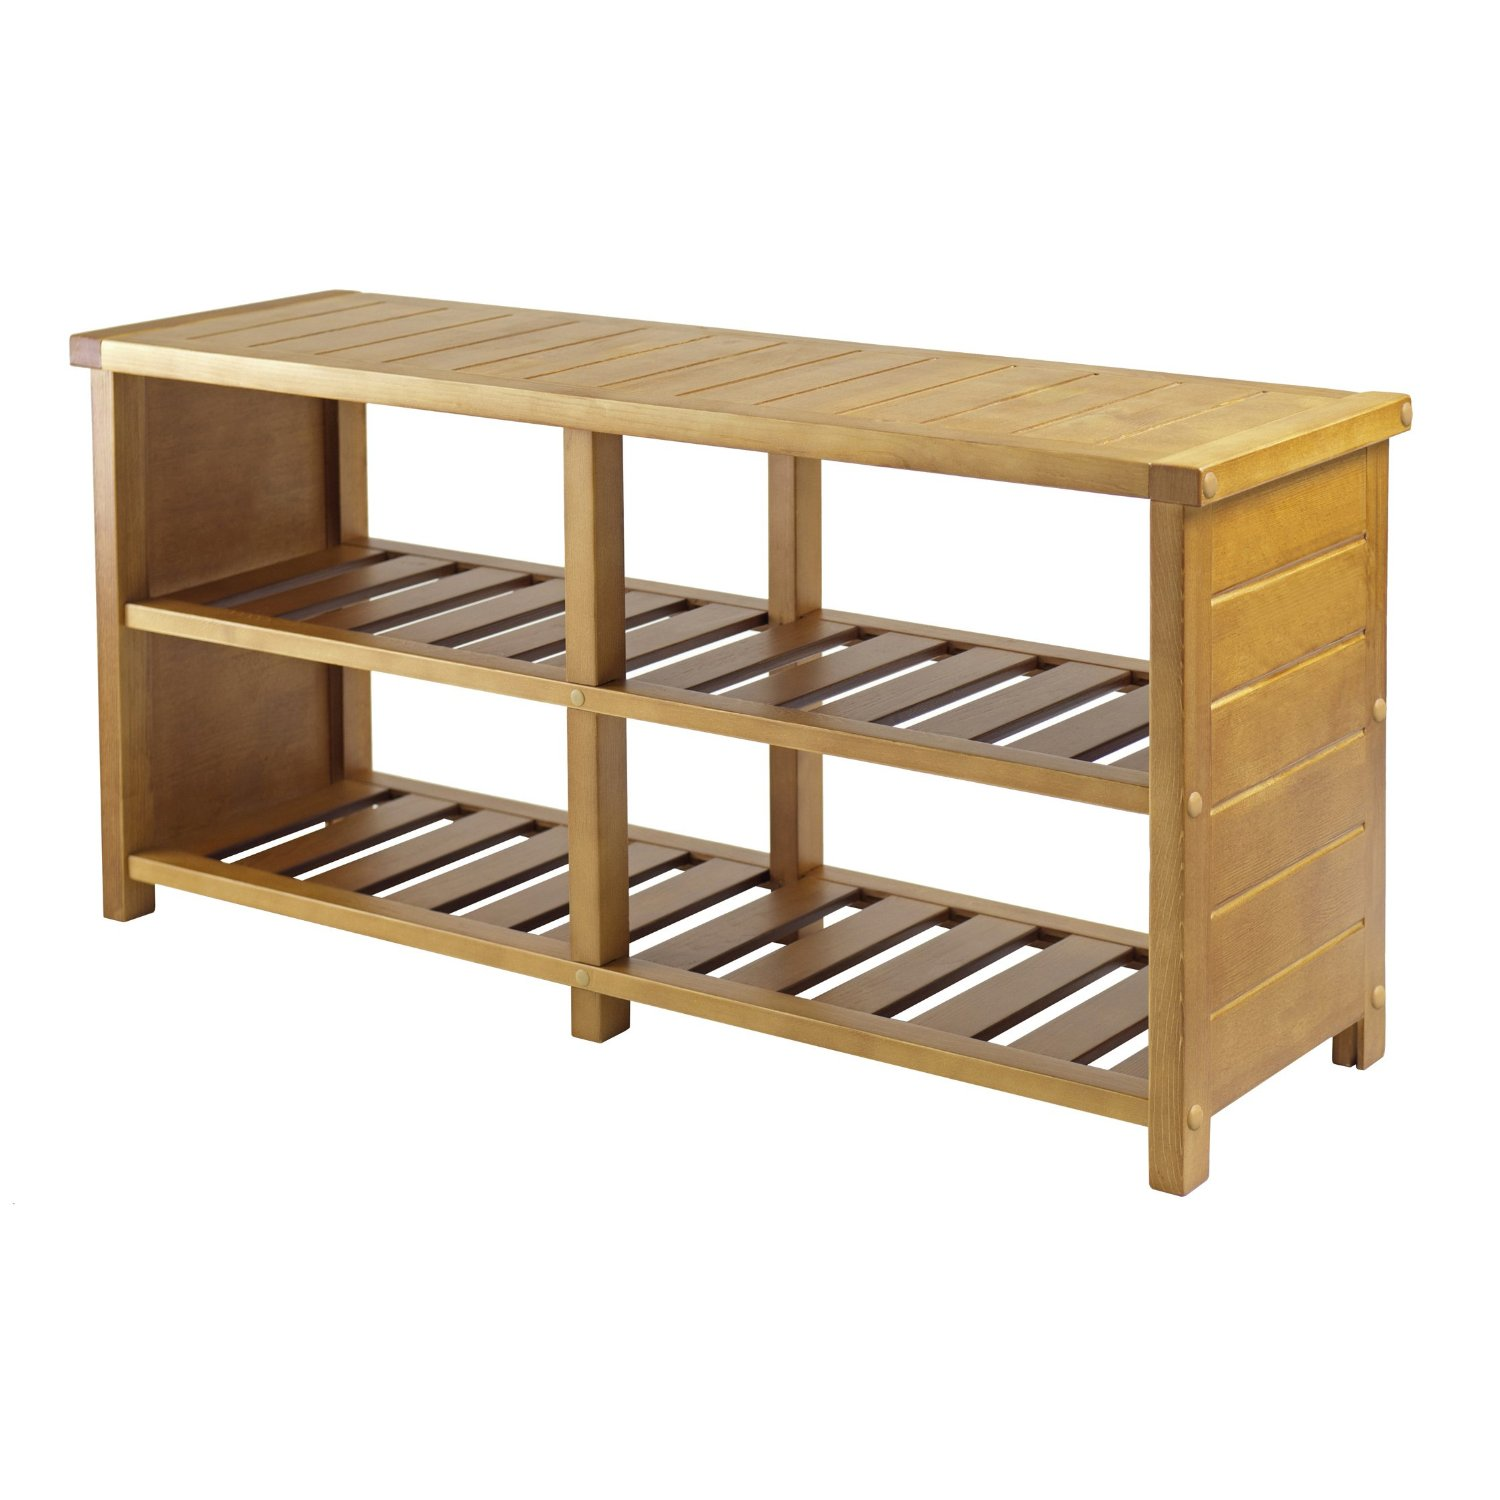 Furniture Outdoor Furniture Storage Entry Bench Shoe Storage